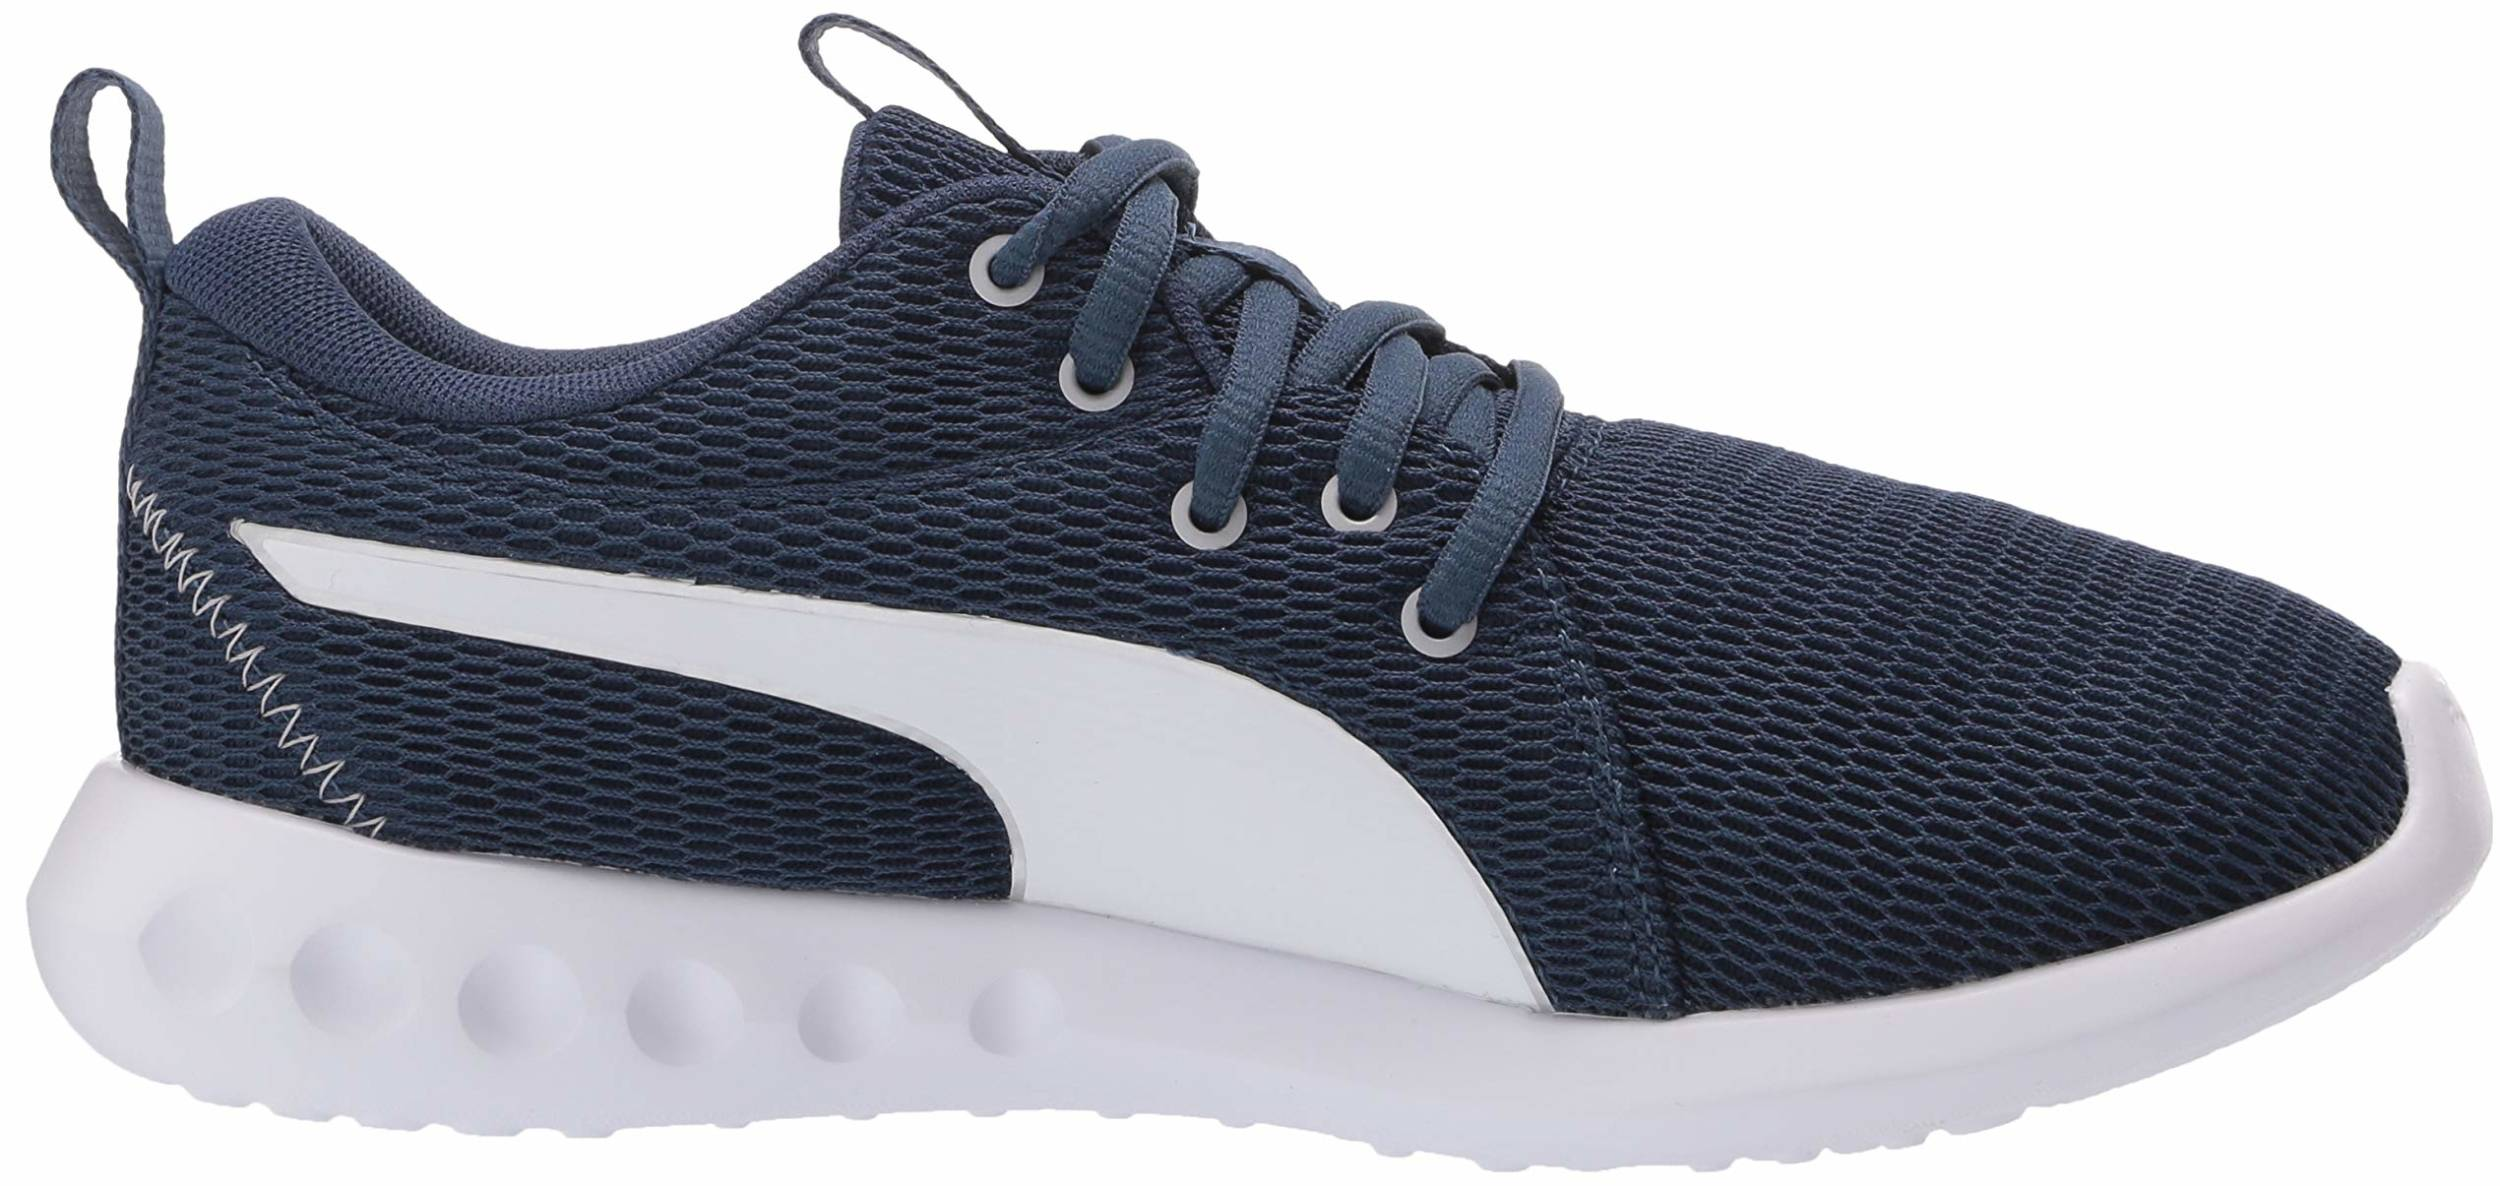 Only $30 + Review of Puma Carson 2